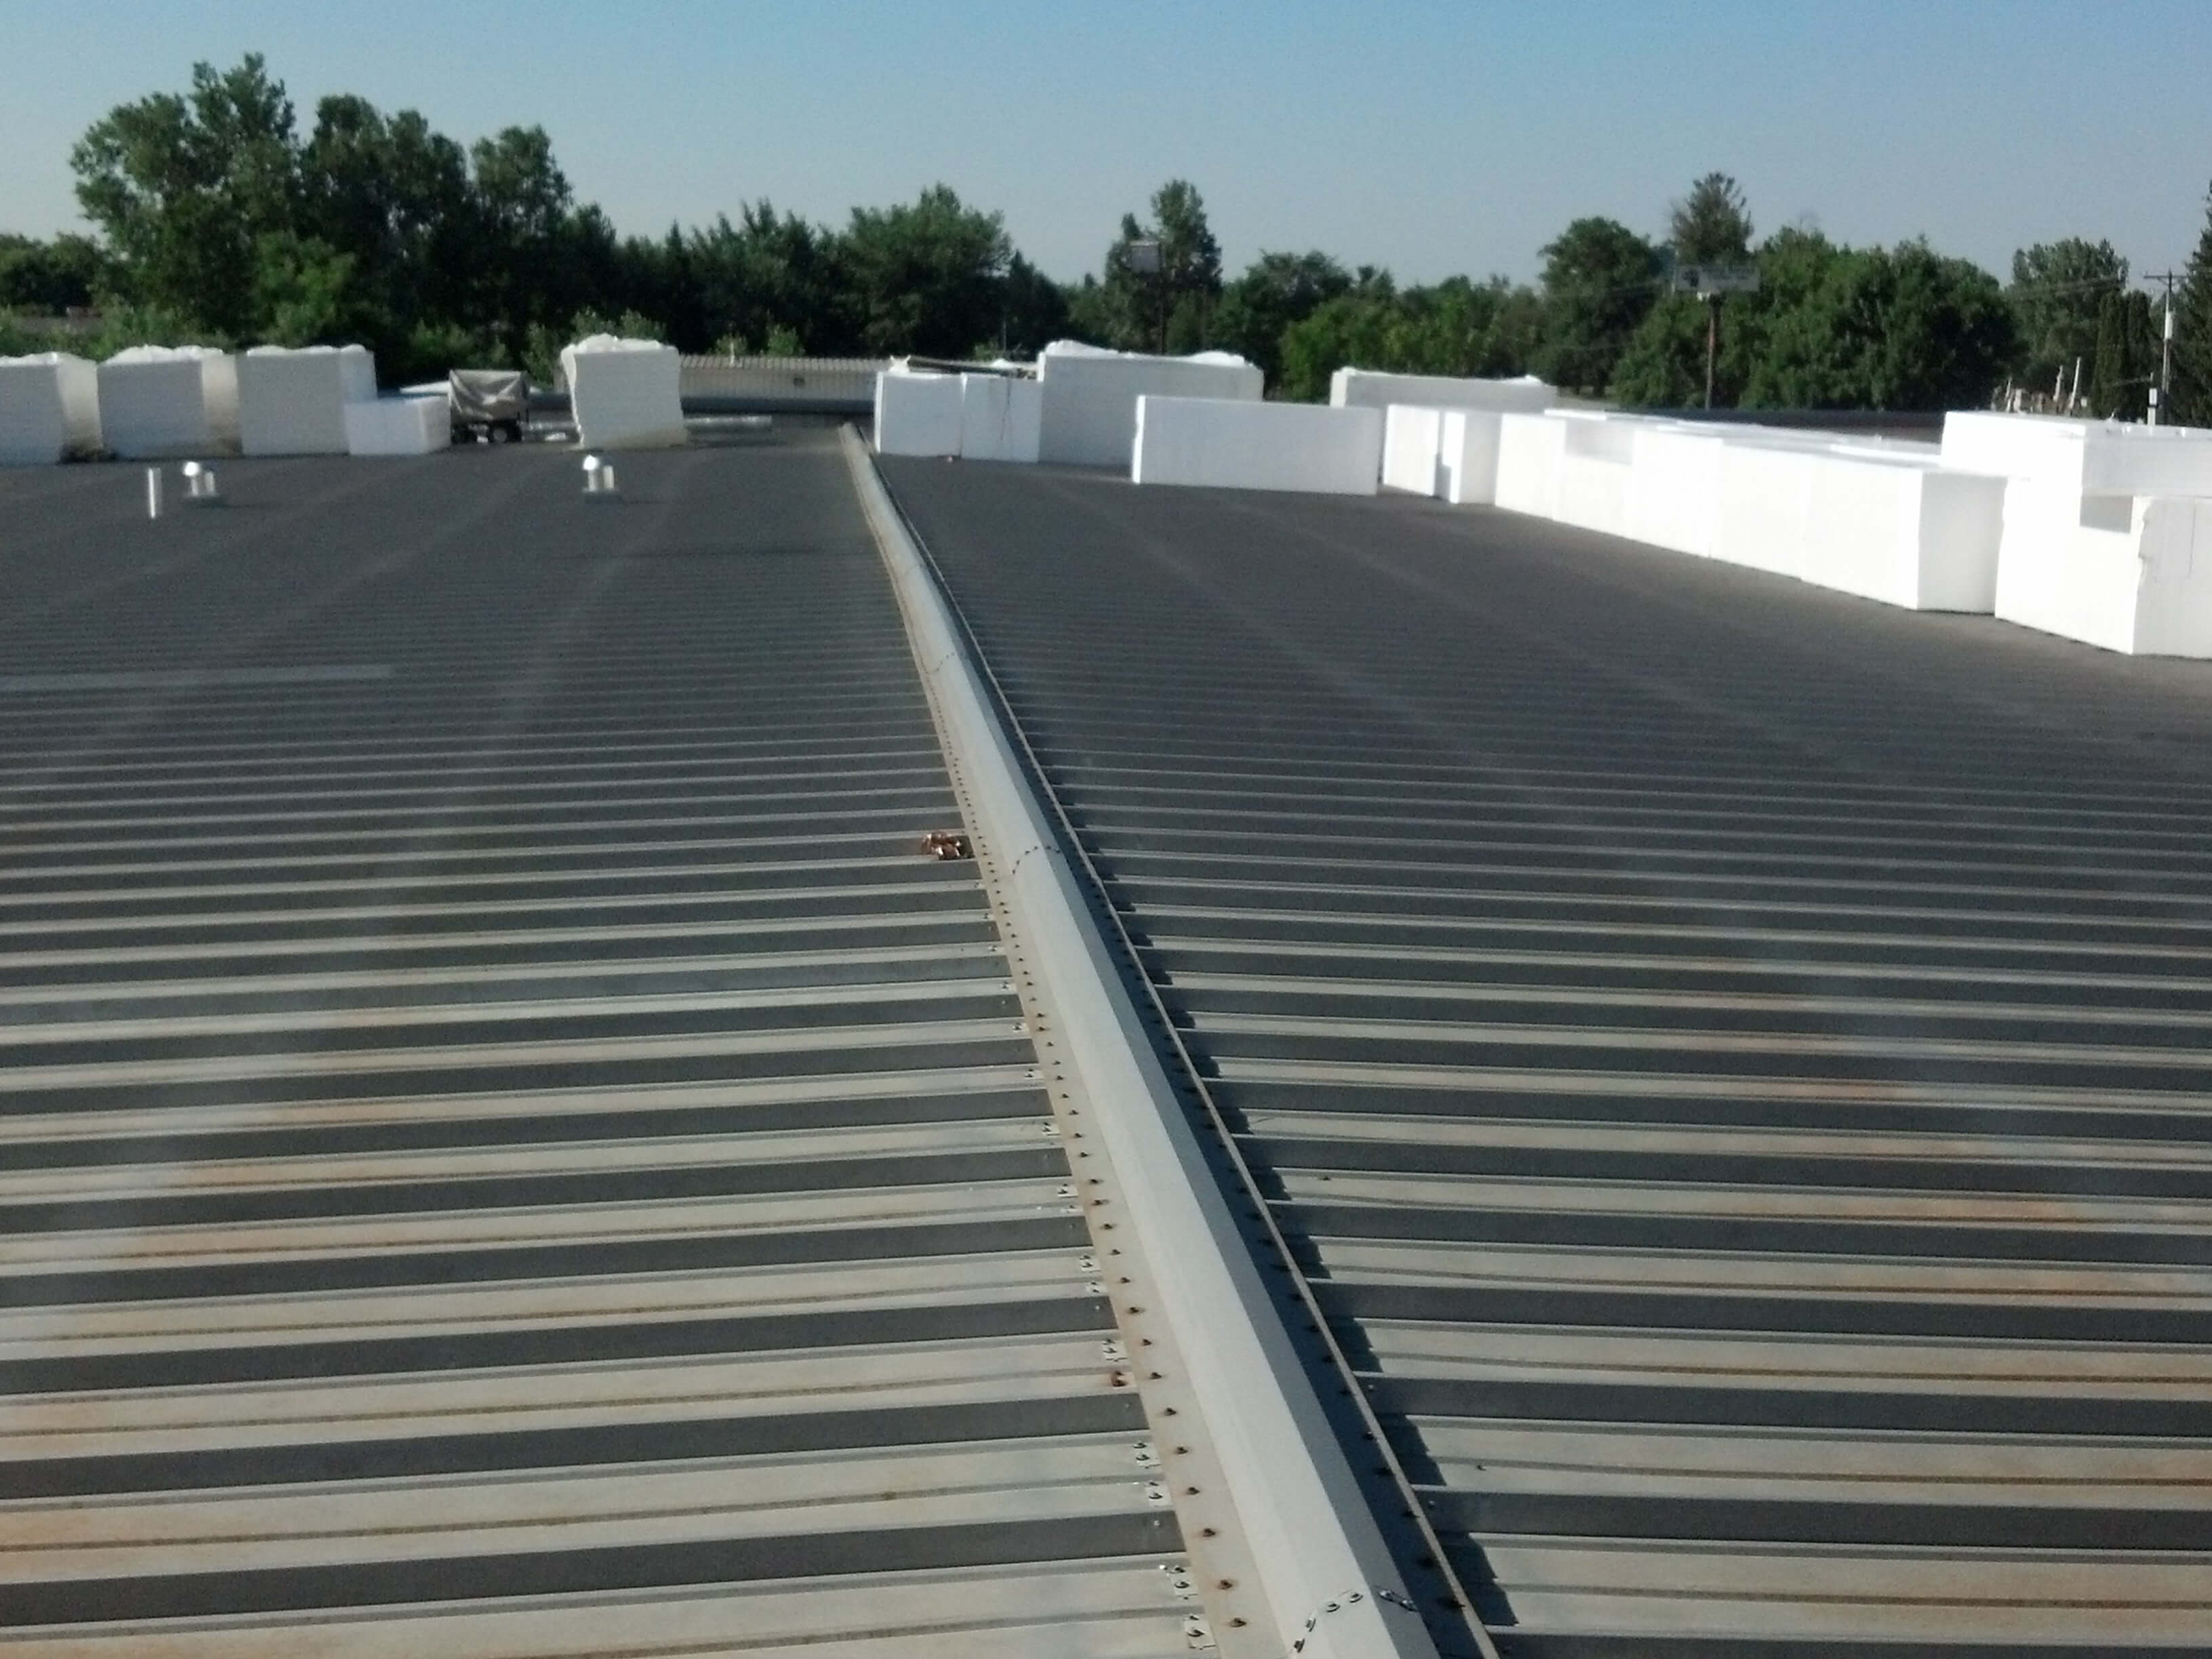 Single Ply Roof Installation : Single ply commercial roof restoration mdm roofing